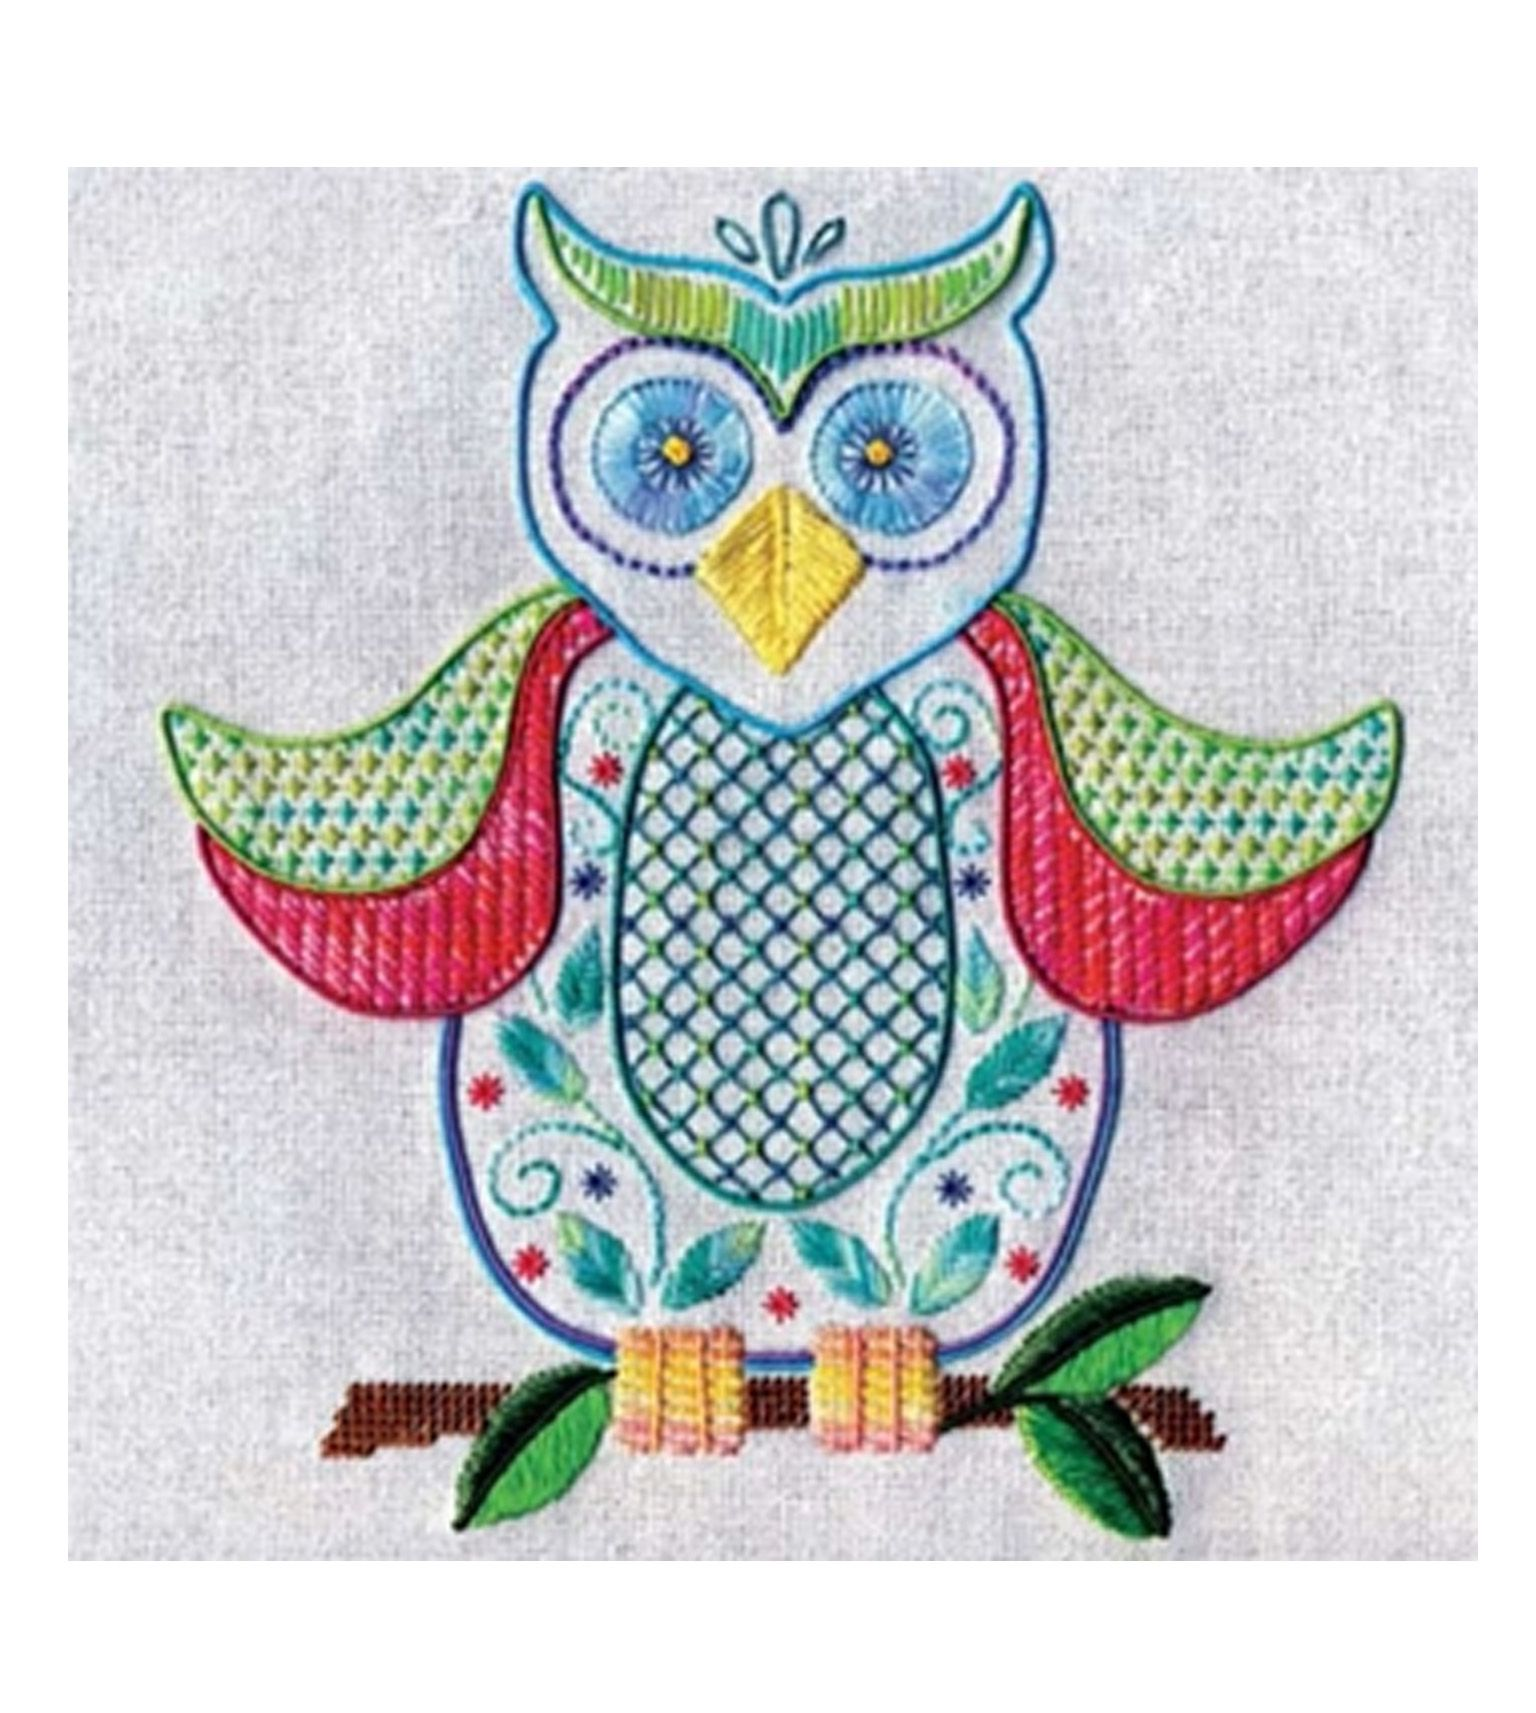 ordinary Owl Embroidery Pattern Part - 14: owl embroidery pattern. Download free project here:  http:--dmc-usa.com-Inspiration-Projects-Memory-Thread-Cross-Stitch-Spring- Owl.aspx